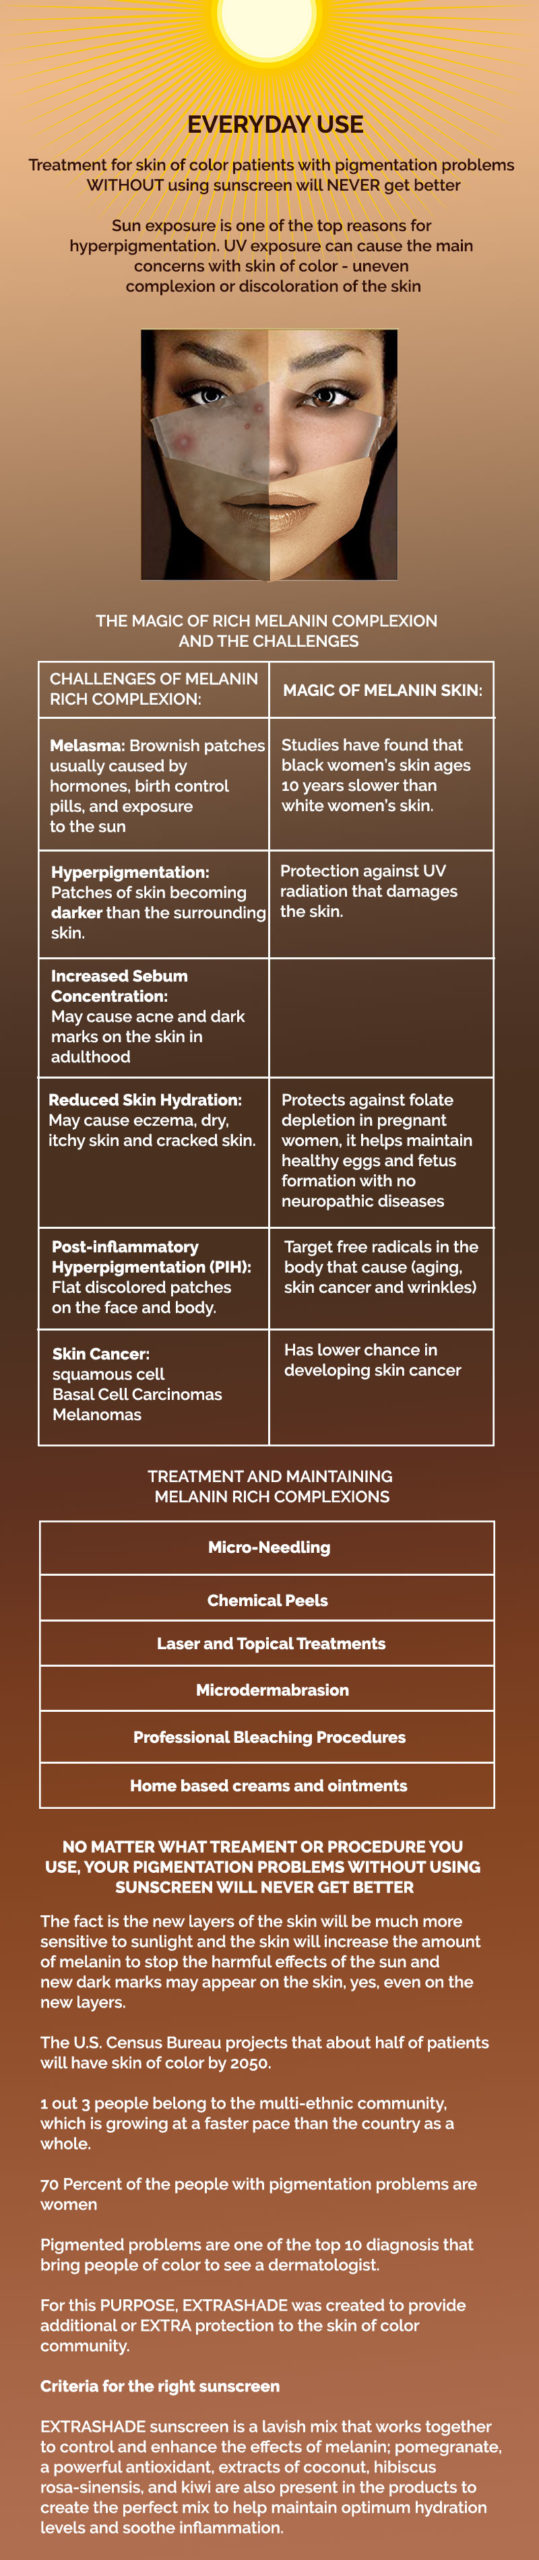 infograph Jpeg scaled THE MAGIC OF MELANIN RICH COMPLEXION AND THE CHALLENGES